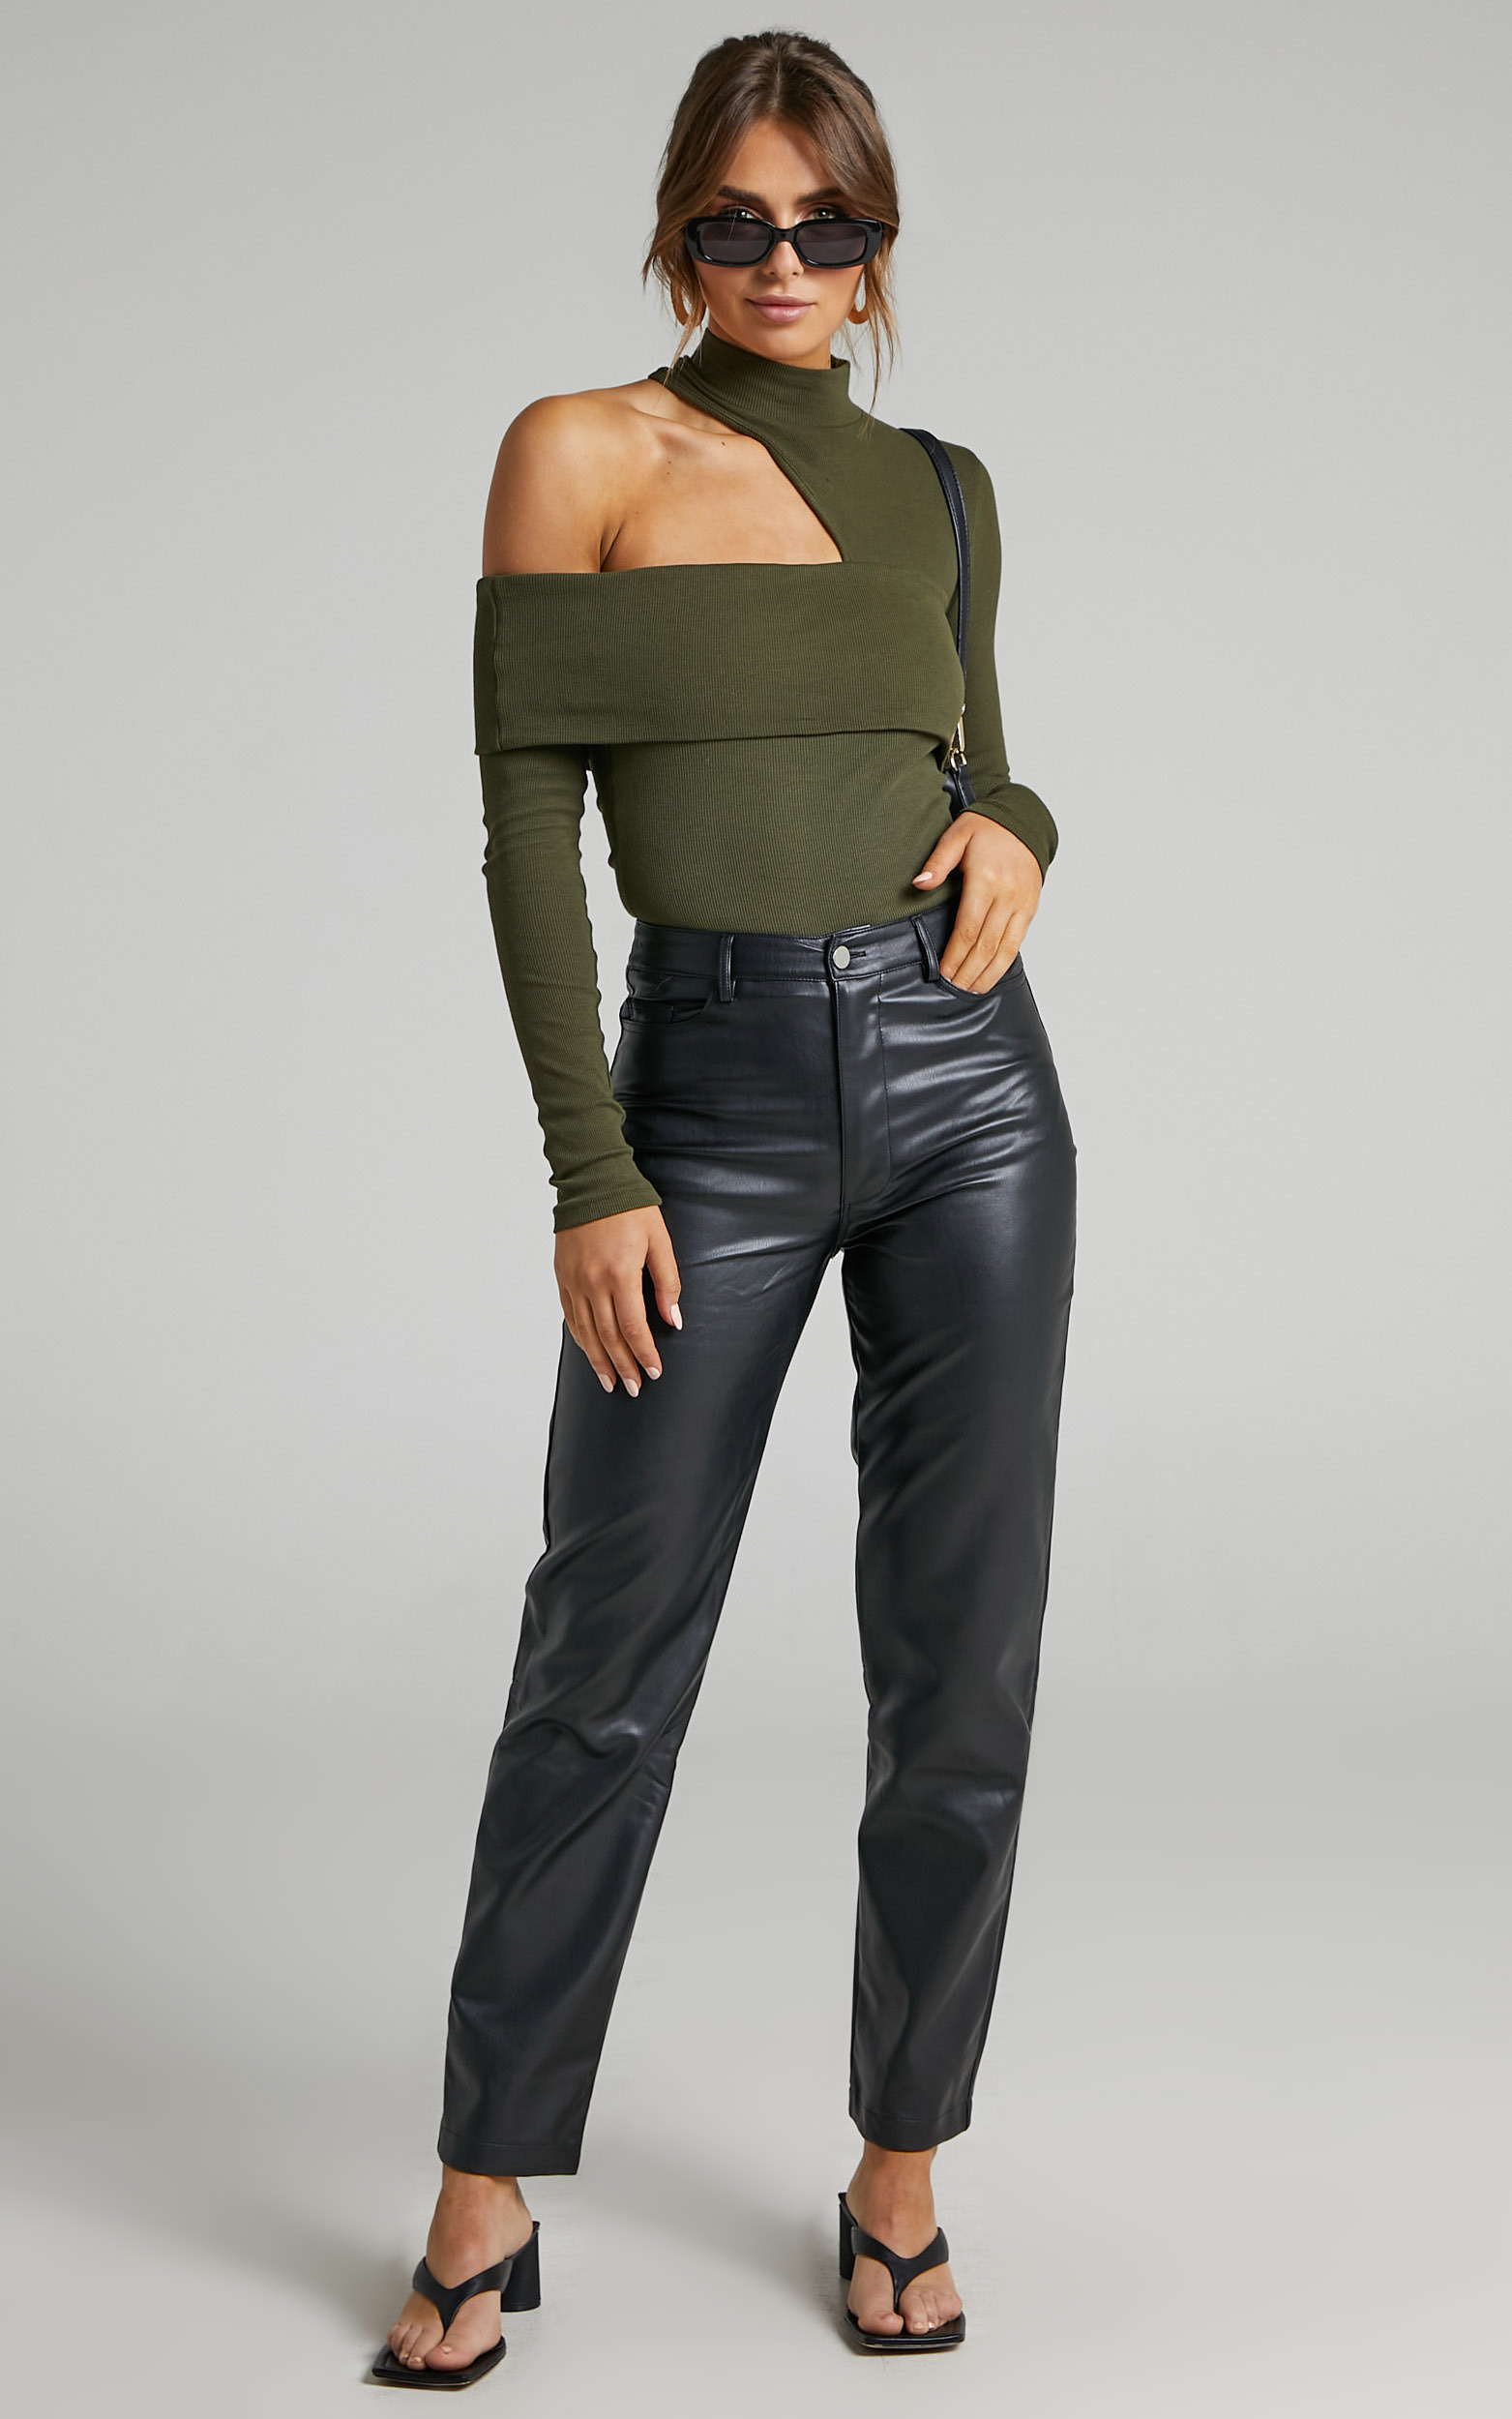 Kiefer Asymmetric Cutout Top in Khaki - 06, GRN2, hi-res image number null